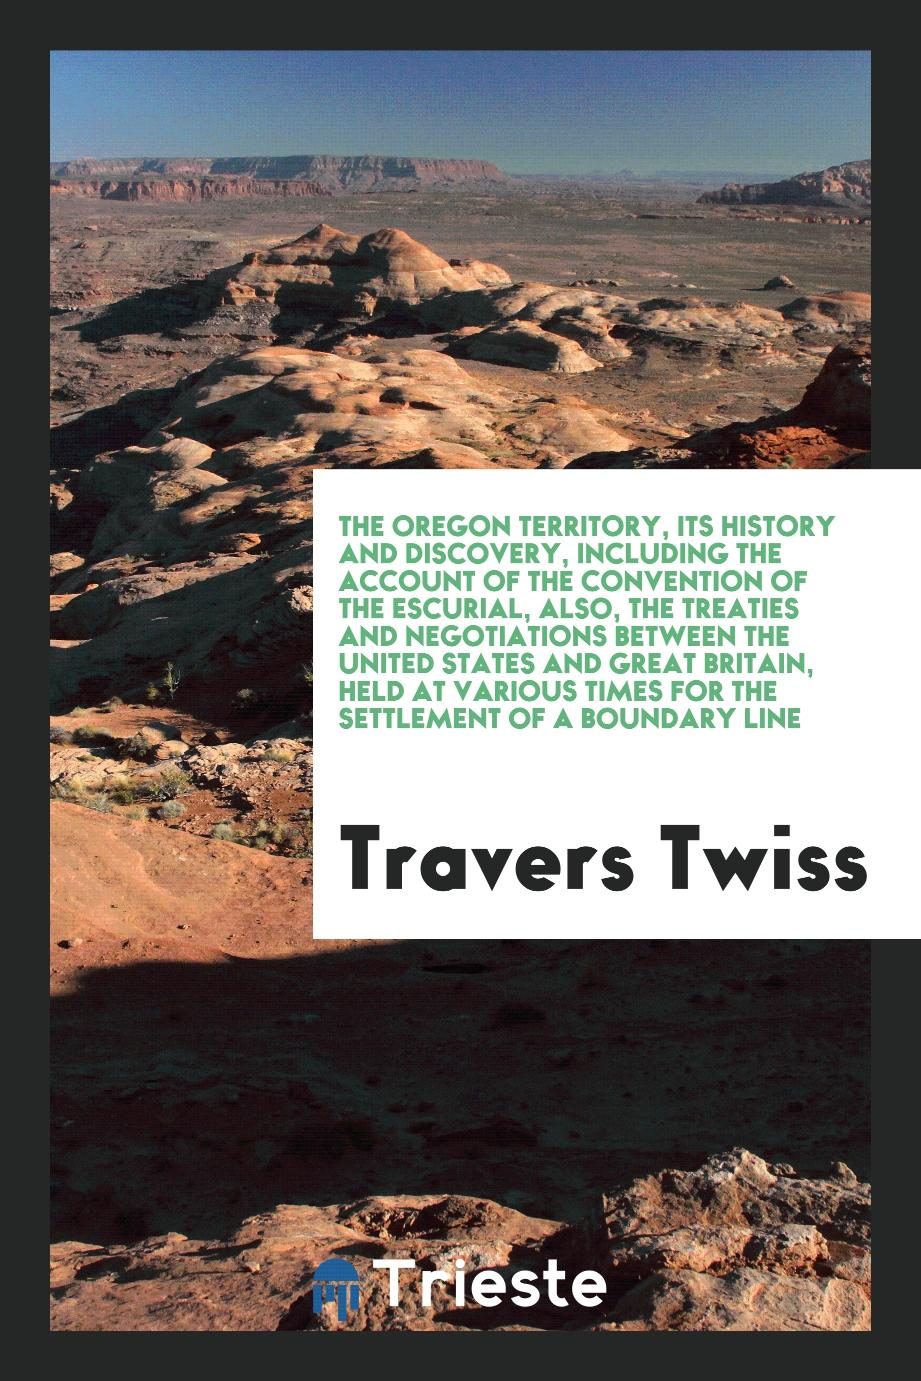 The Oregon Territory, Its History and Discovery, Including the Account of the Convention of the Escurial, Also, the Treaties and Negotiations Between the United States and Great Britain, Held at Various Times for the Settlement of a Boundary Line